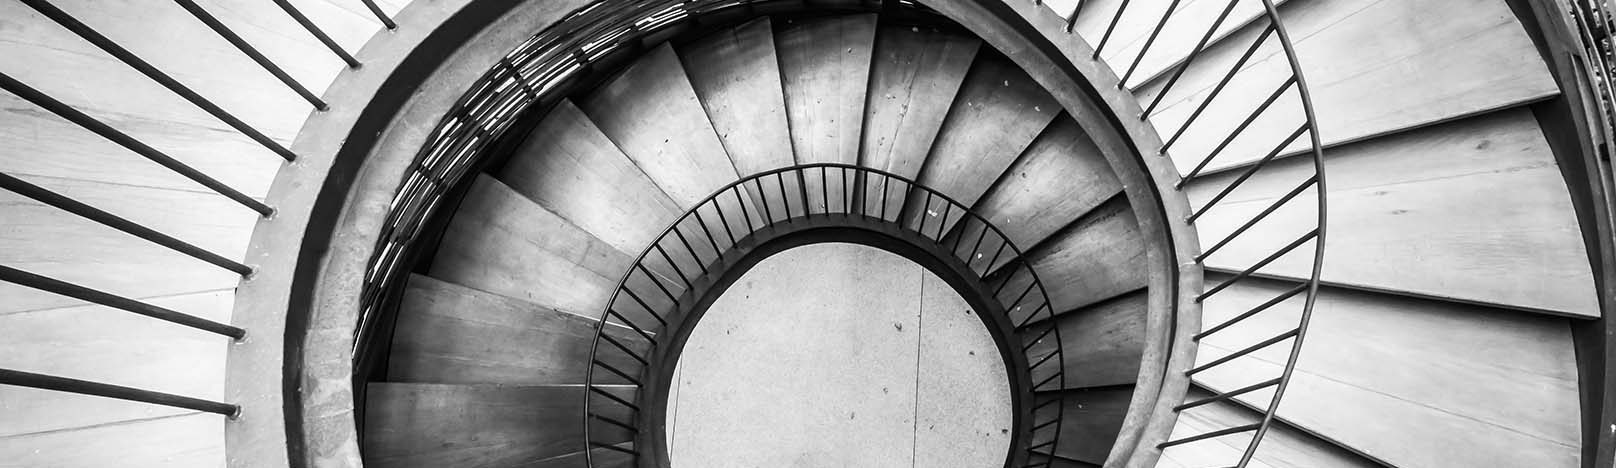 Bw staircase